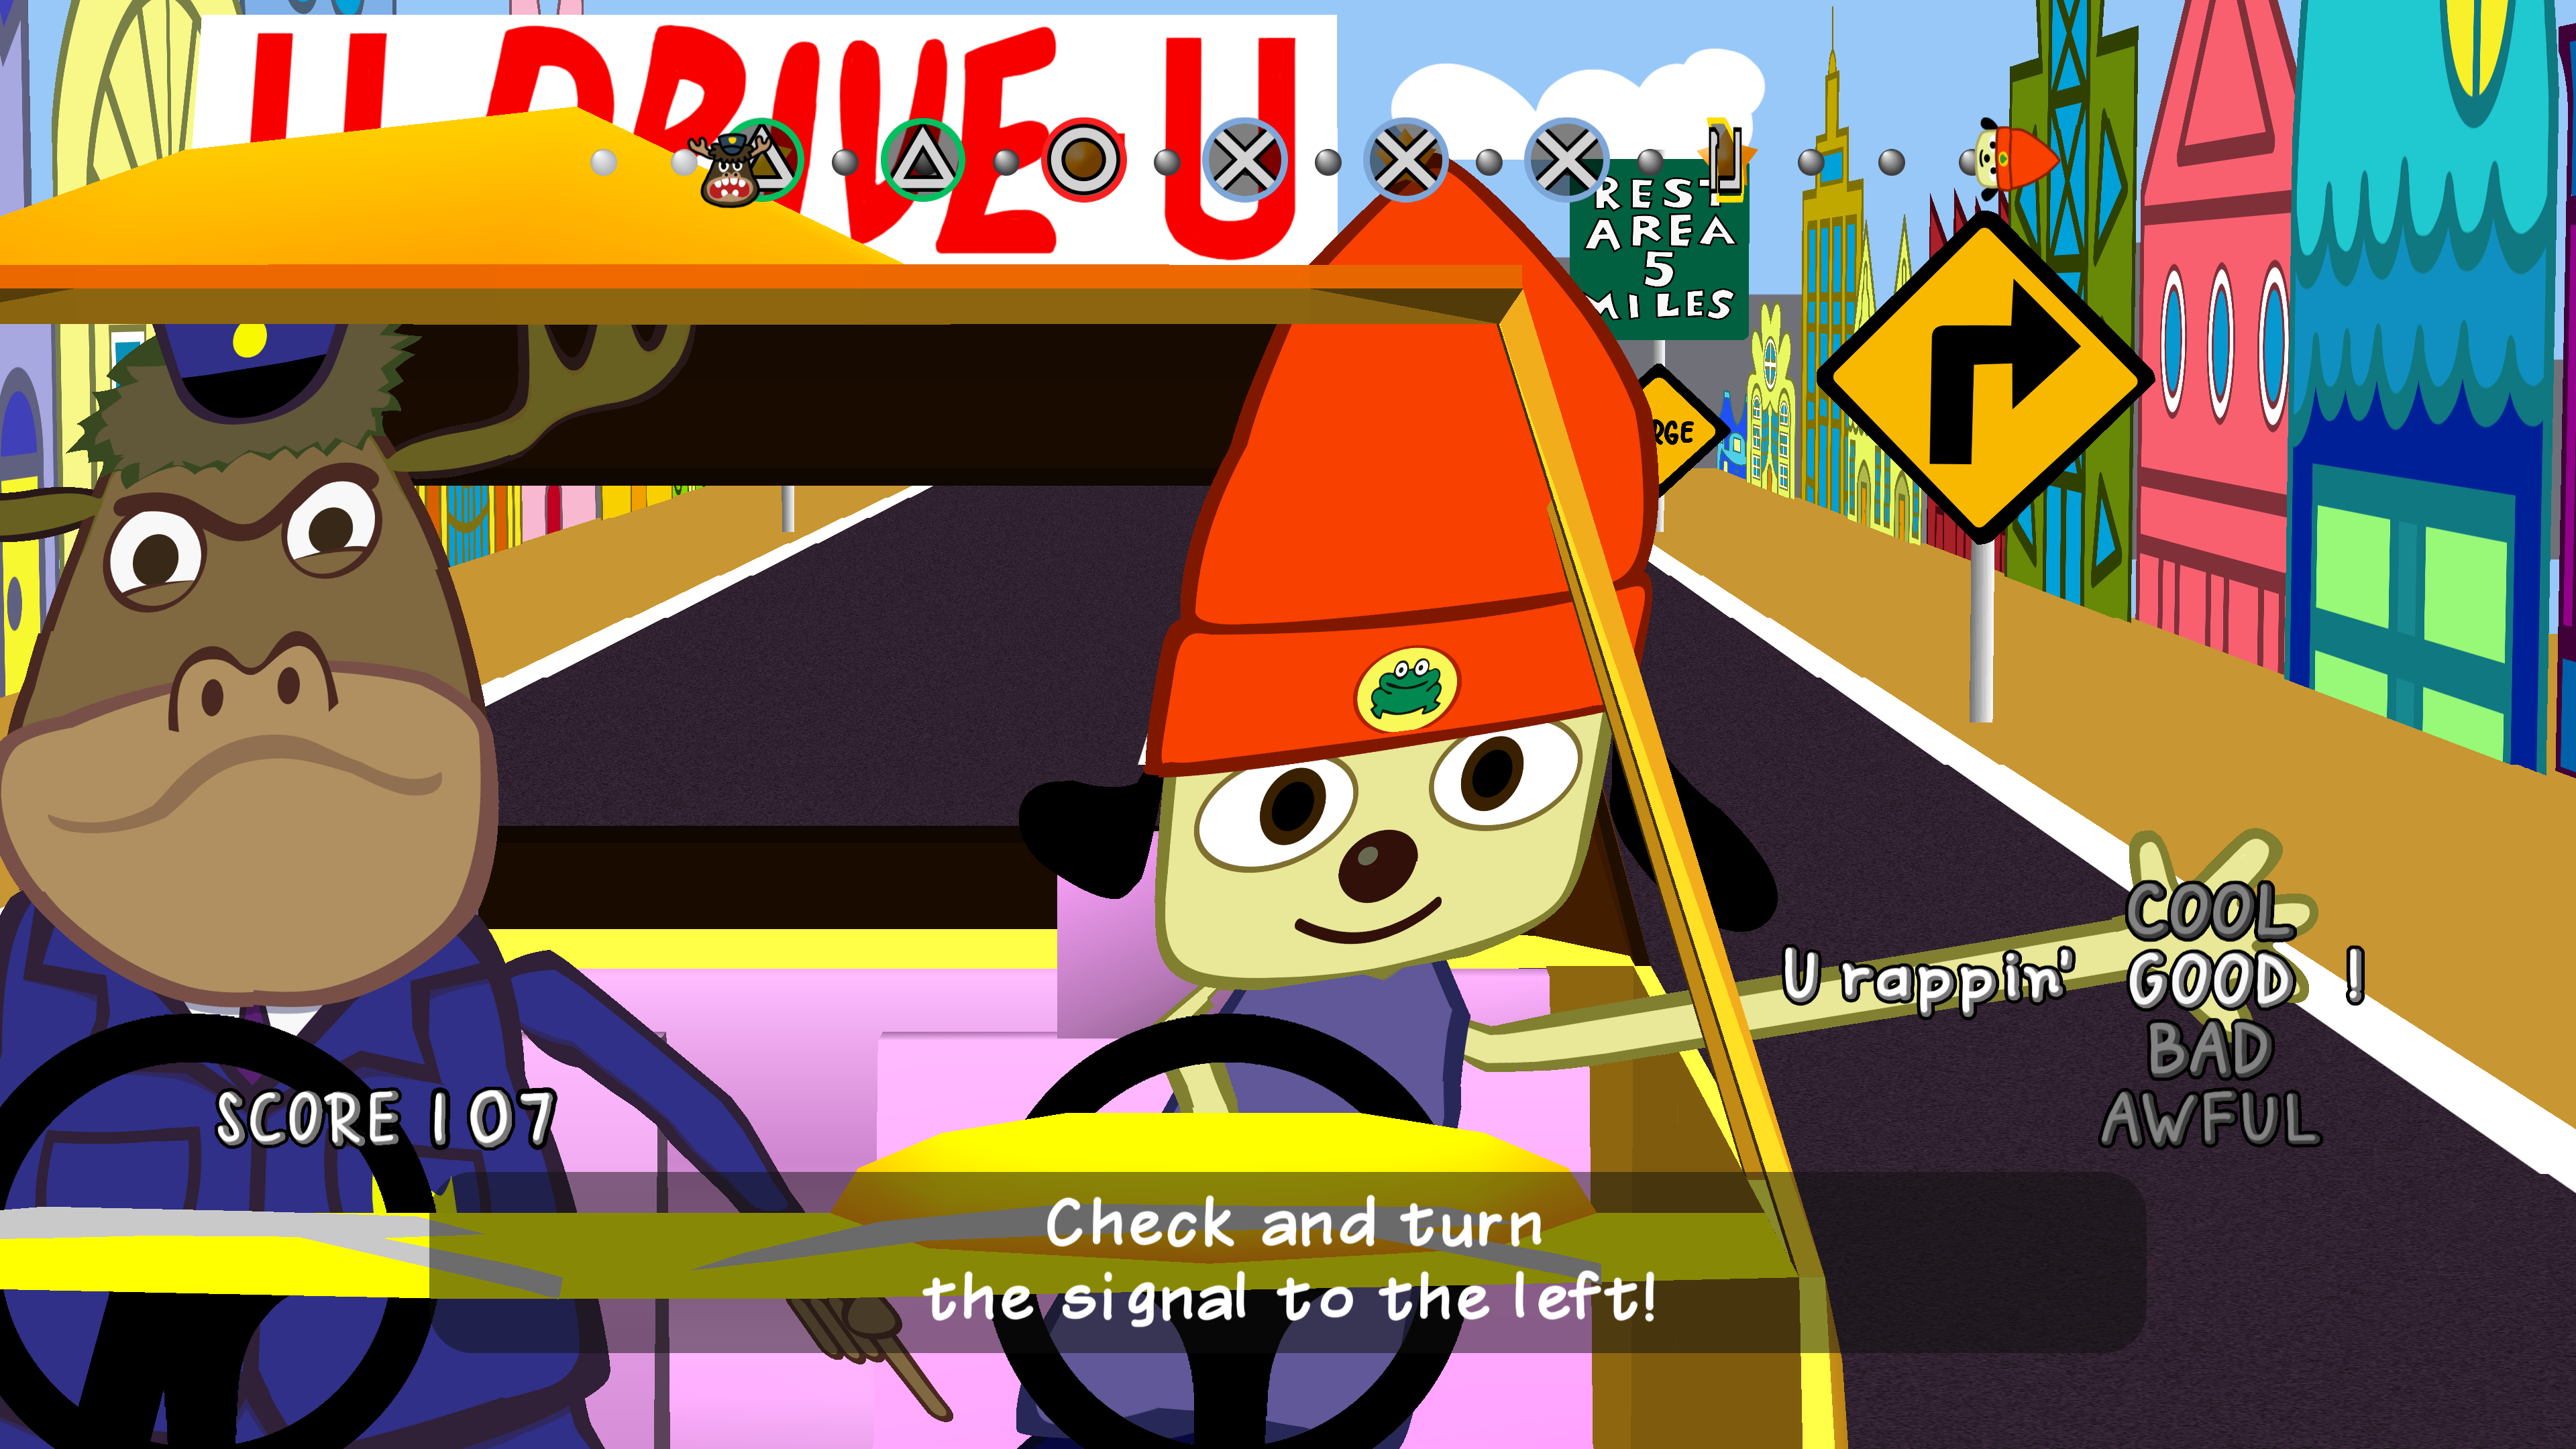 we're so happy parappa the rapper is back to frustrate us | kotaku